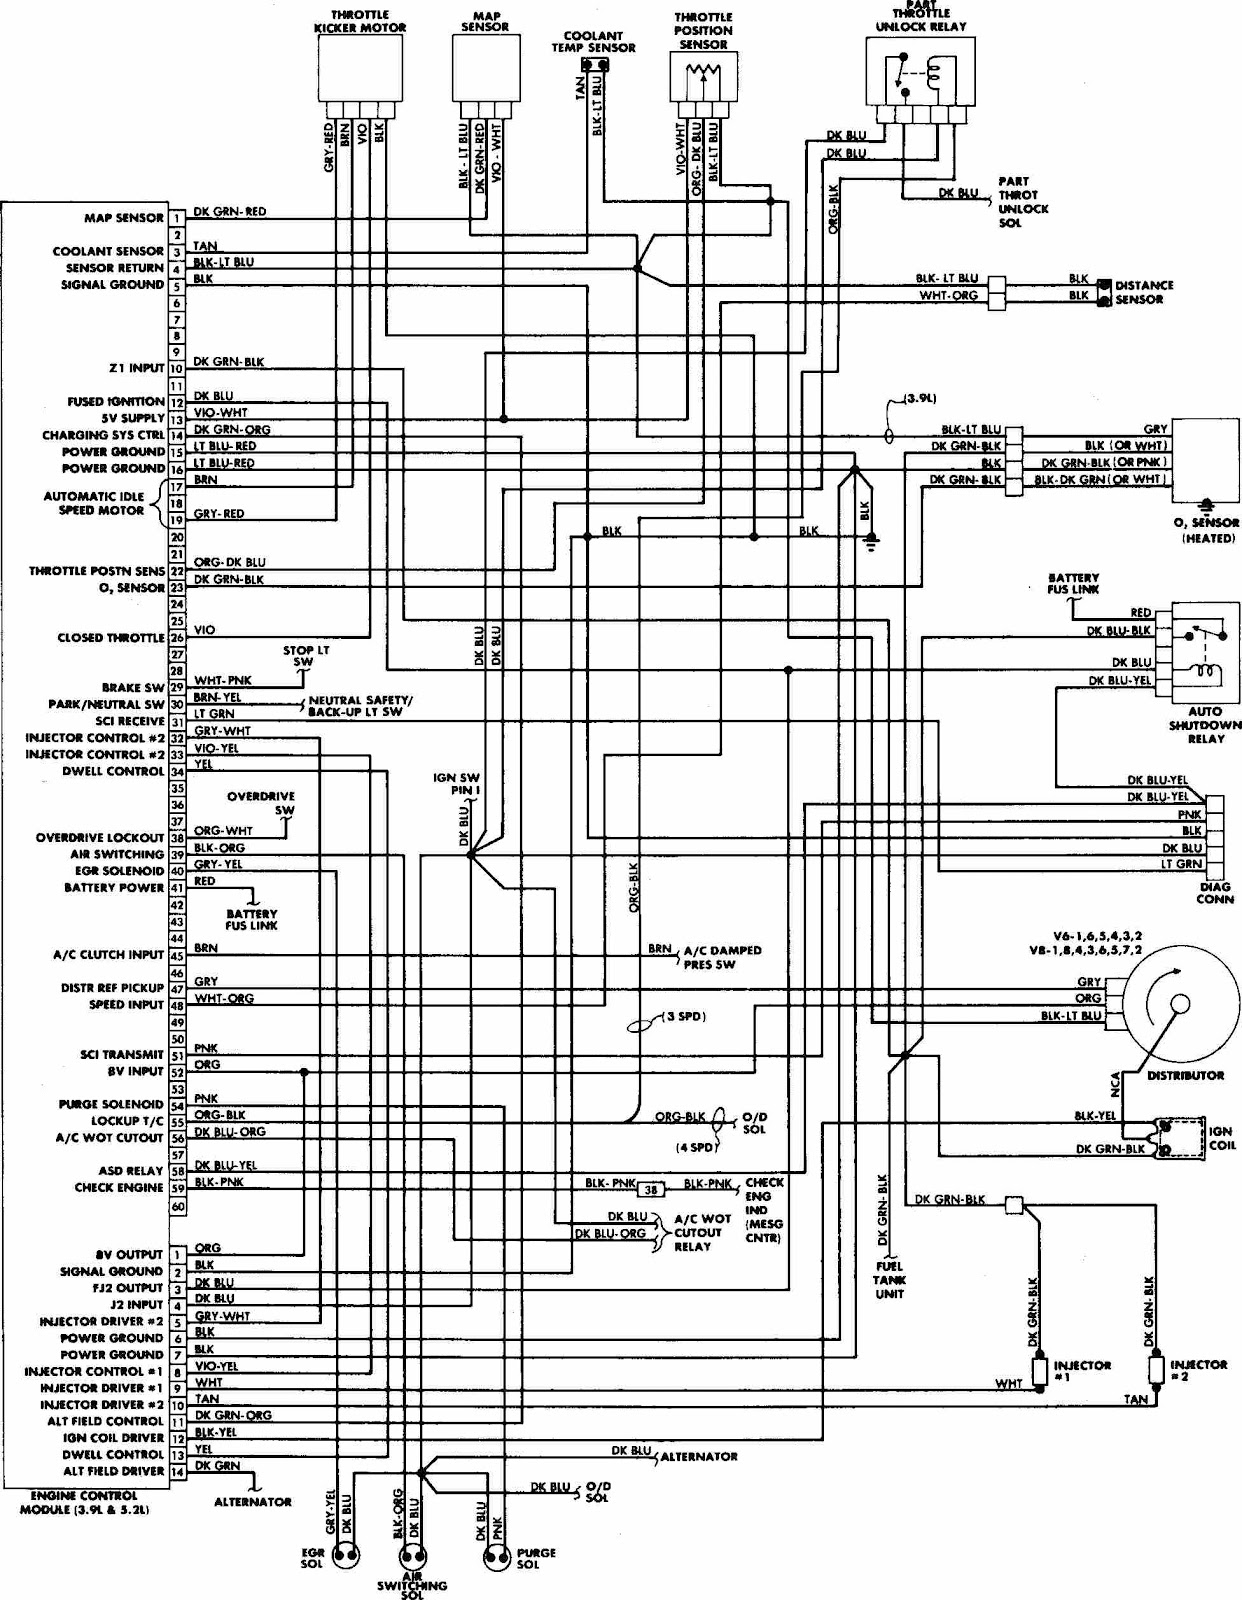 small resolution of dodge w100 1988 engine control wiring diagram all about wiring diagrams 2011 gmc sierra wiring diagram